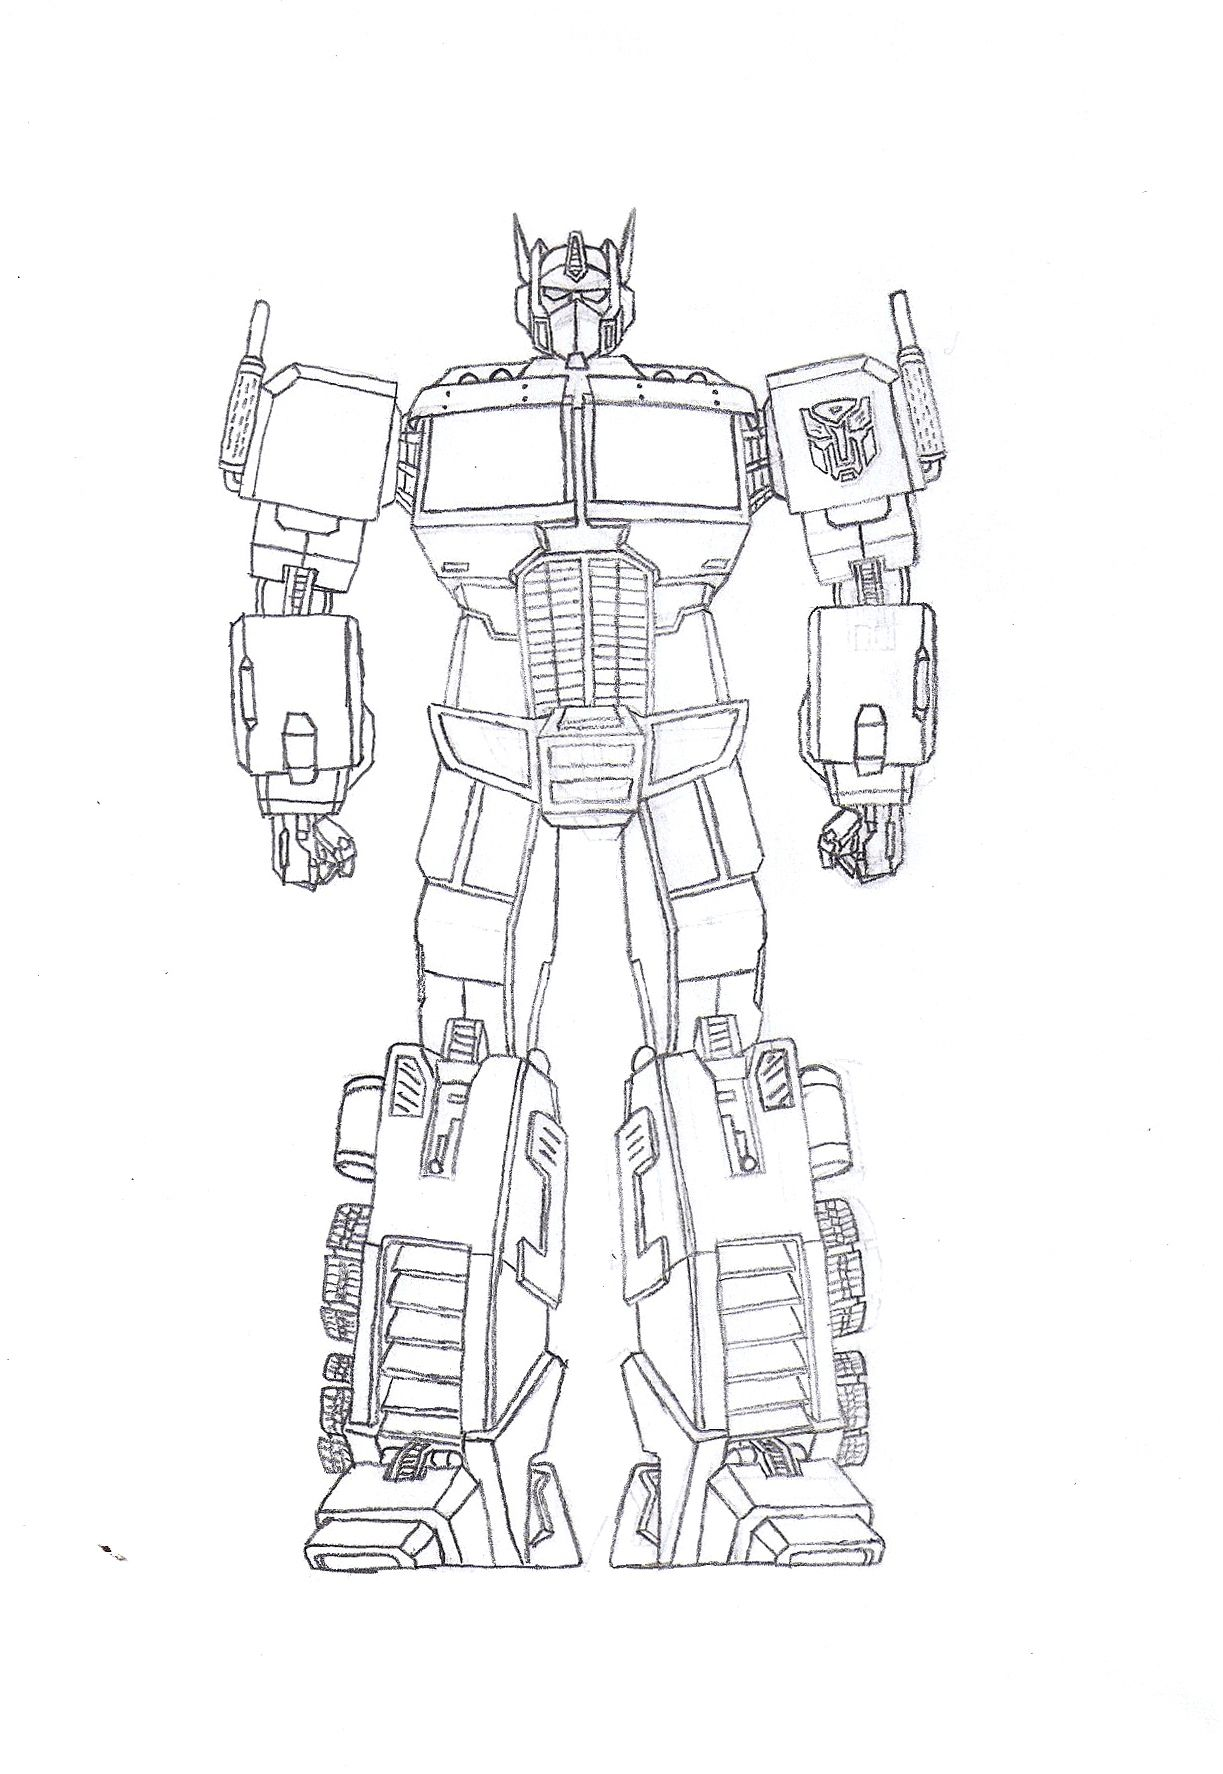 Optimus Prime Coloring Page Unique Free Coloring Pages Of Transformer Ratchet Of 50 Lovely Optim Transformers Coloring Pages Coloring Pages Free Coloring Pages